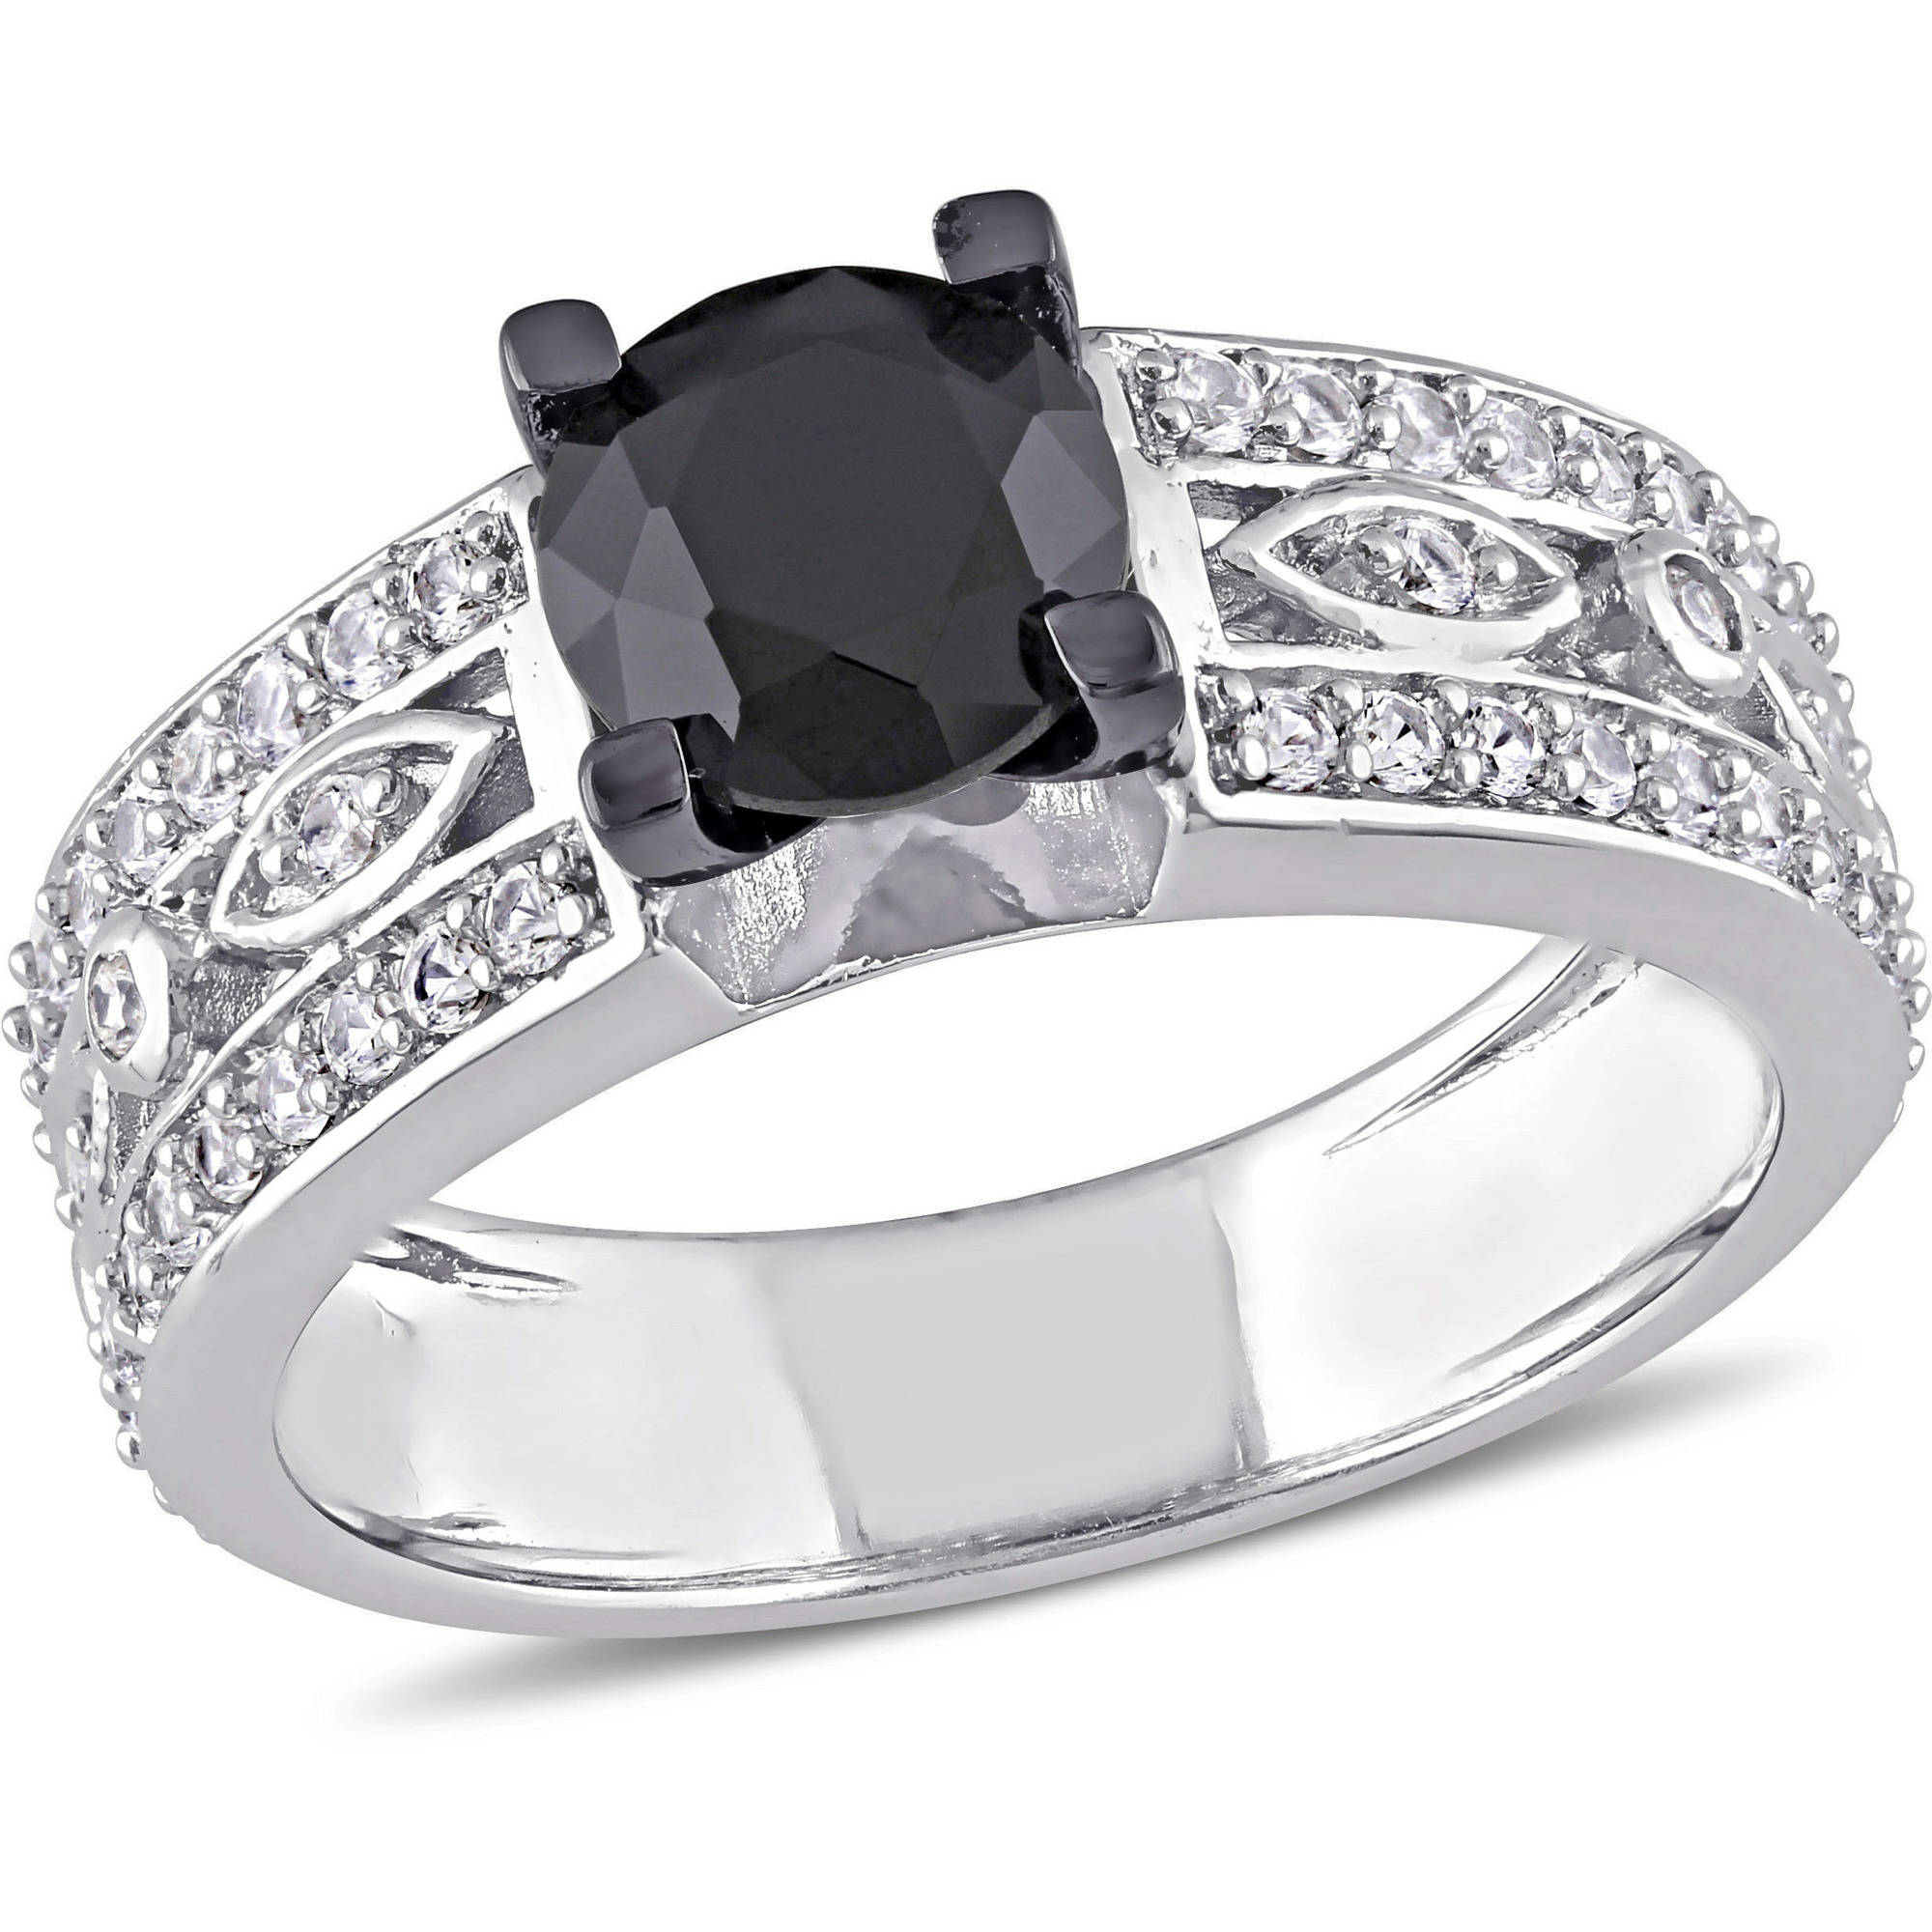 1-3/4 Carat T.G.W. Black Spinel and White Sapphire Engagement Ring in Sterling Silver